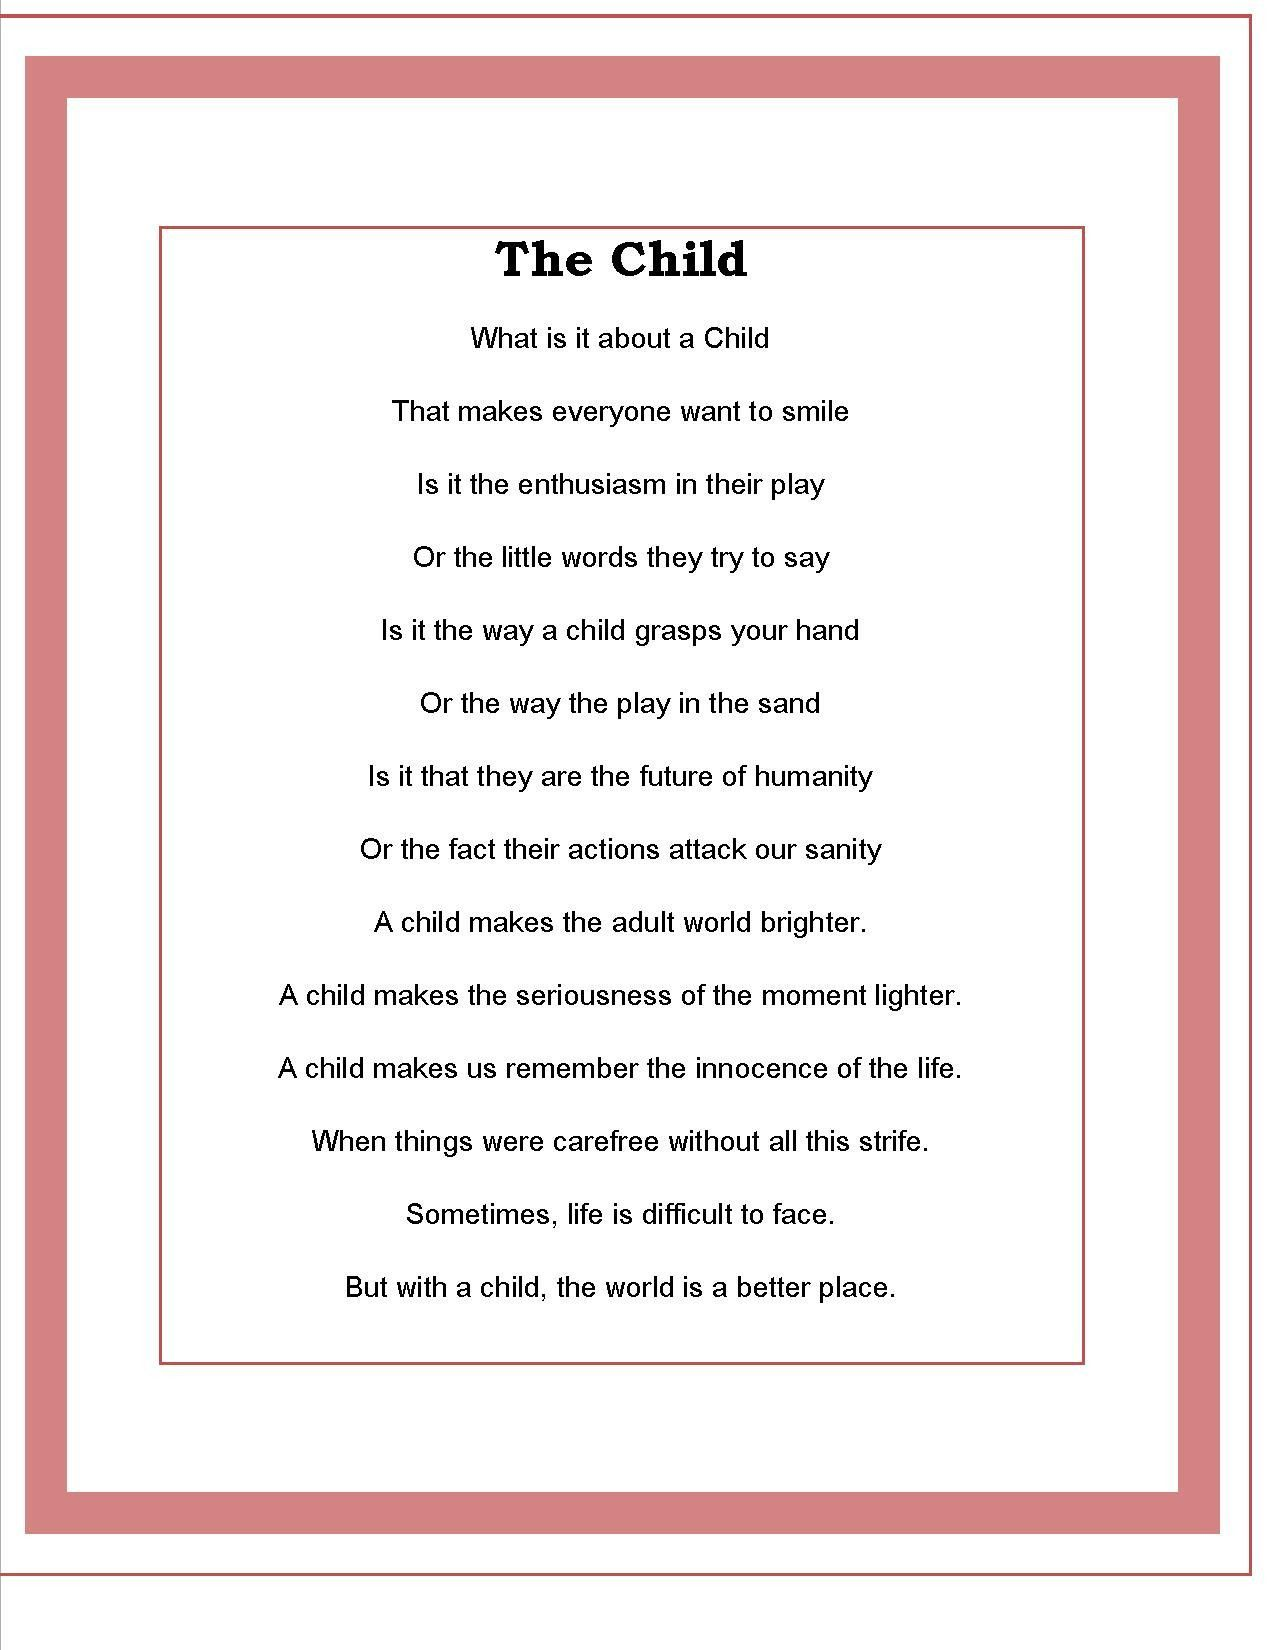 the child poem by todd kaudy